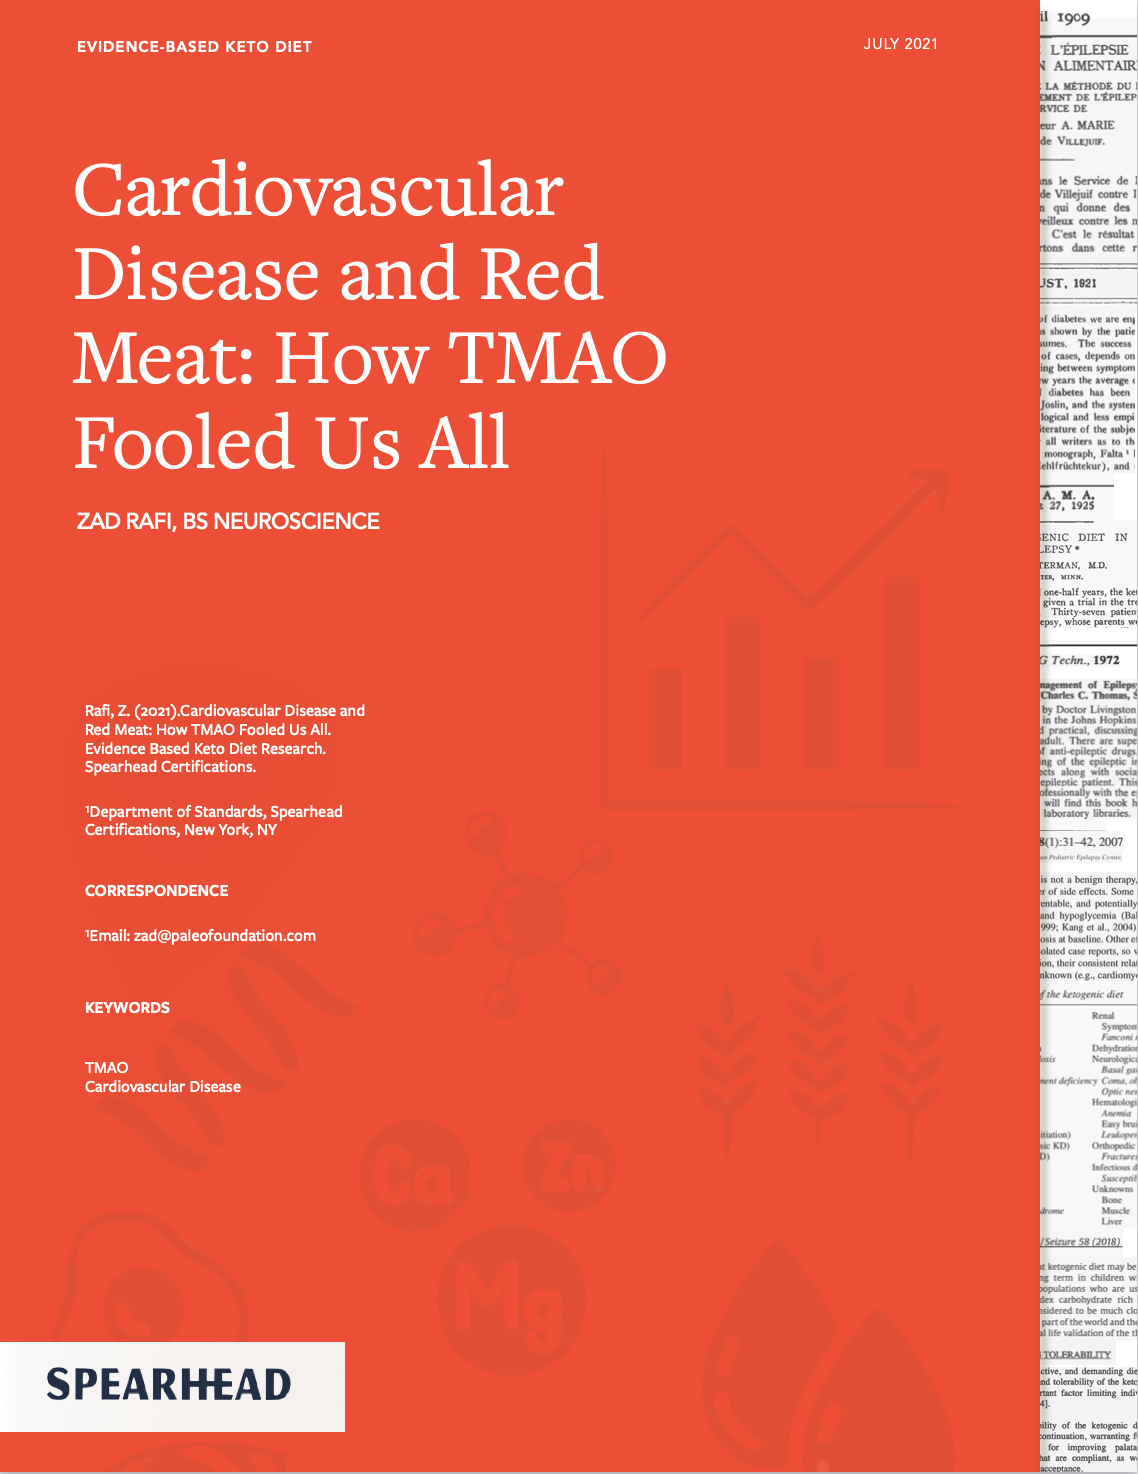 Cardiovascular Disease and Red Meat: How TMAO Fooled Us All